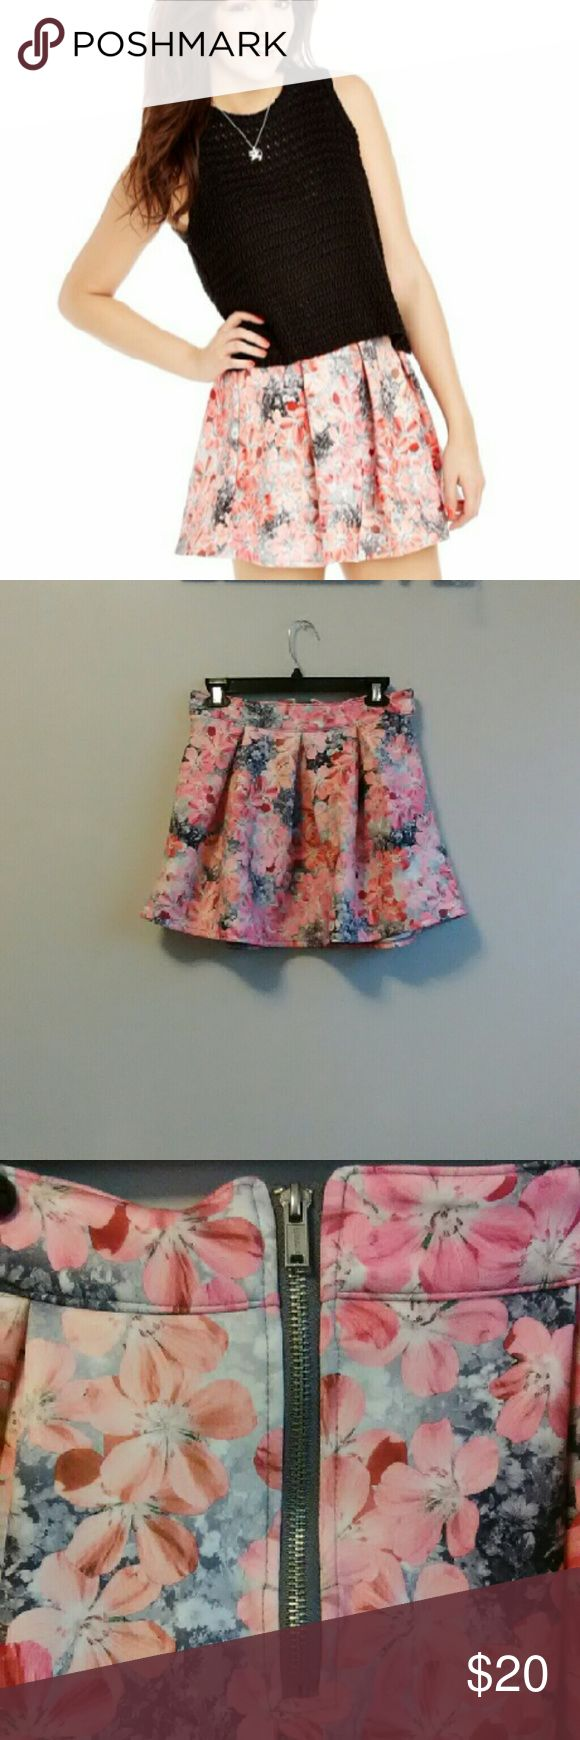 Bethany Mota Floral Skirt! In excellent condition!! Never Worn!  Medium 92% Polyester 8% Spandex Cute, fun, flirty skater skirt!! Zipper on back.  --Please No Low Ballers. --Funds go towards nursing degree!  Have a nice day!(: Aeropostale Skirts Mini